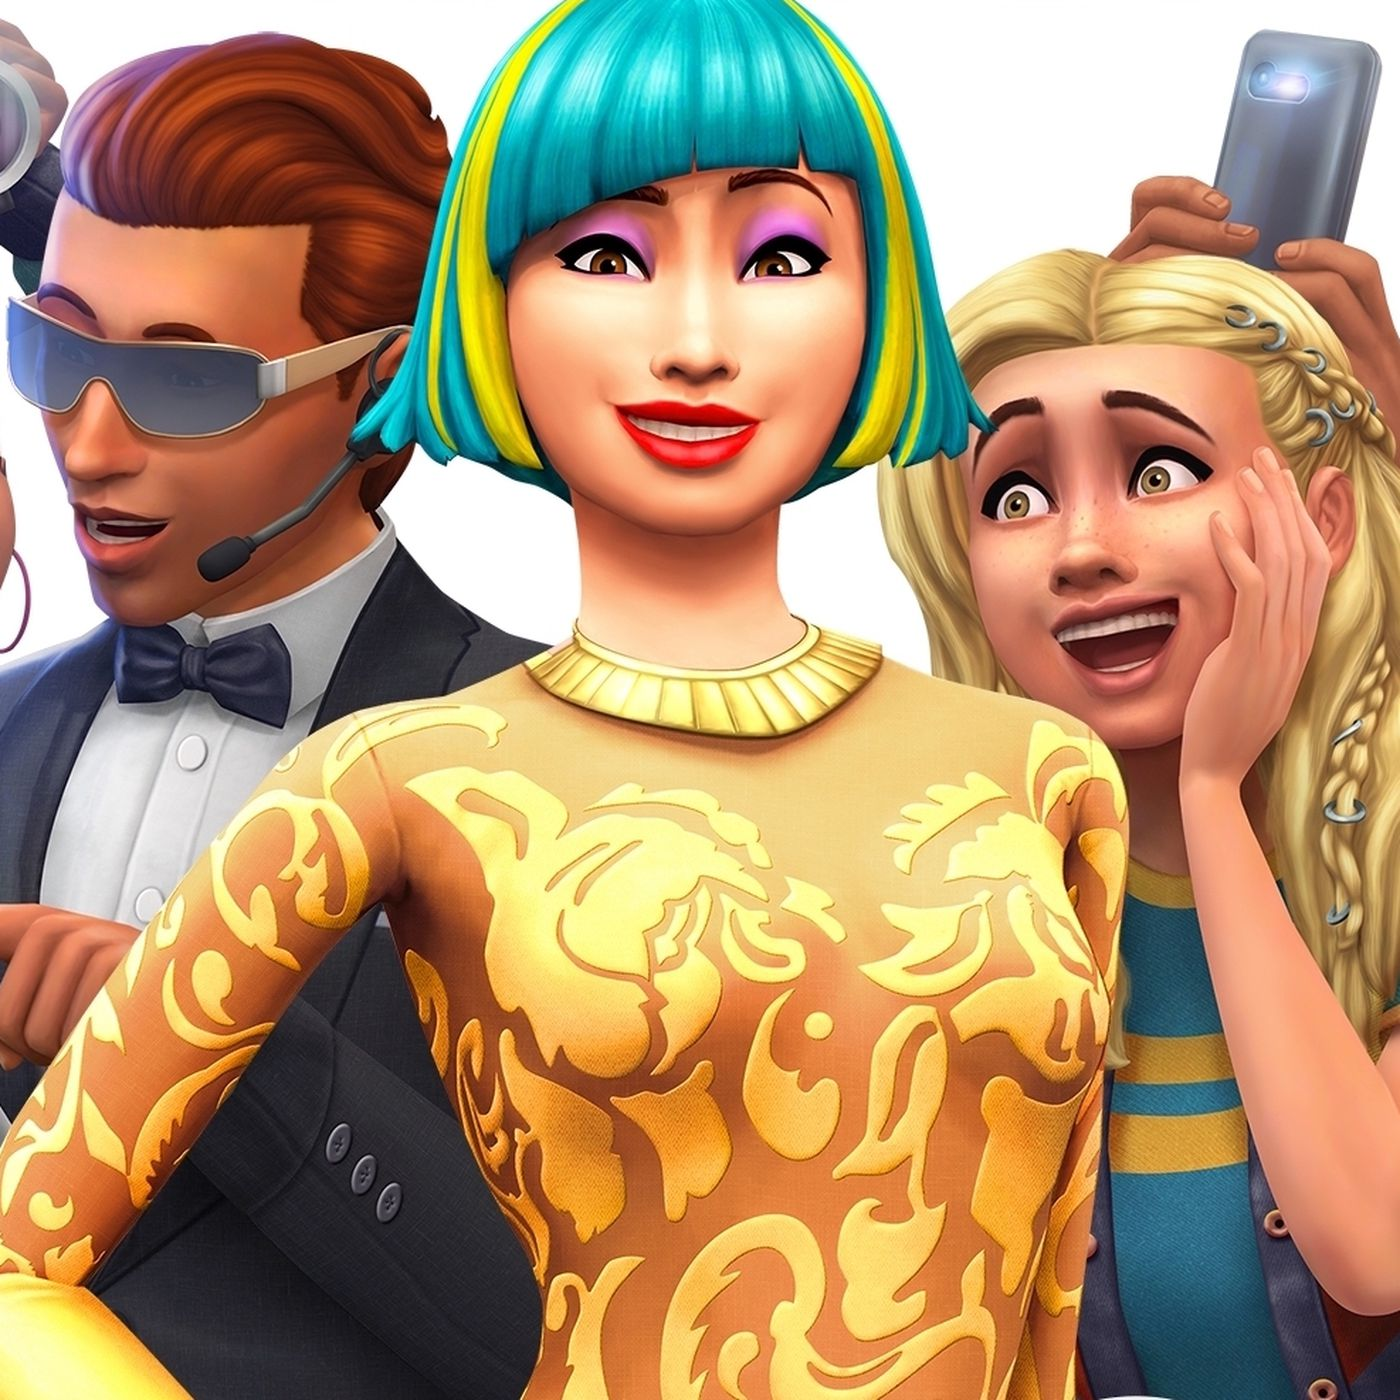 The Sims 4: Get Famous expansion pack announced - Polygon